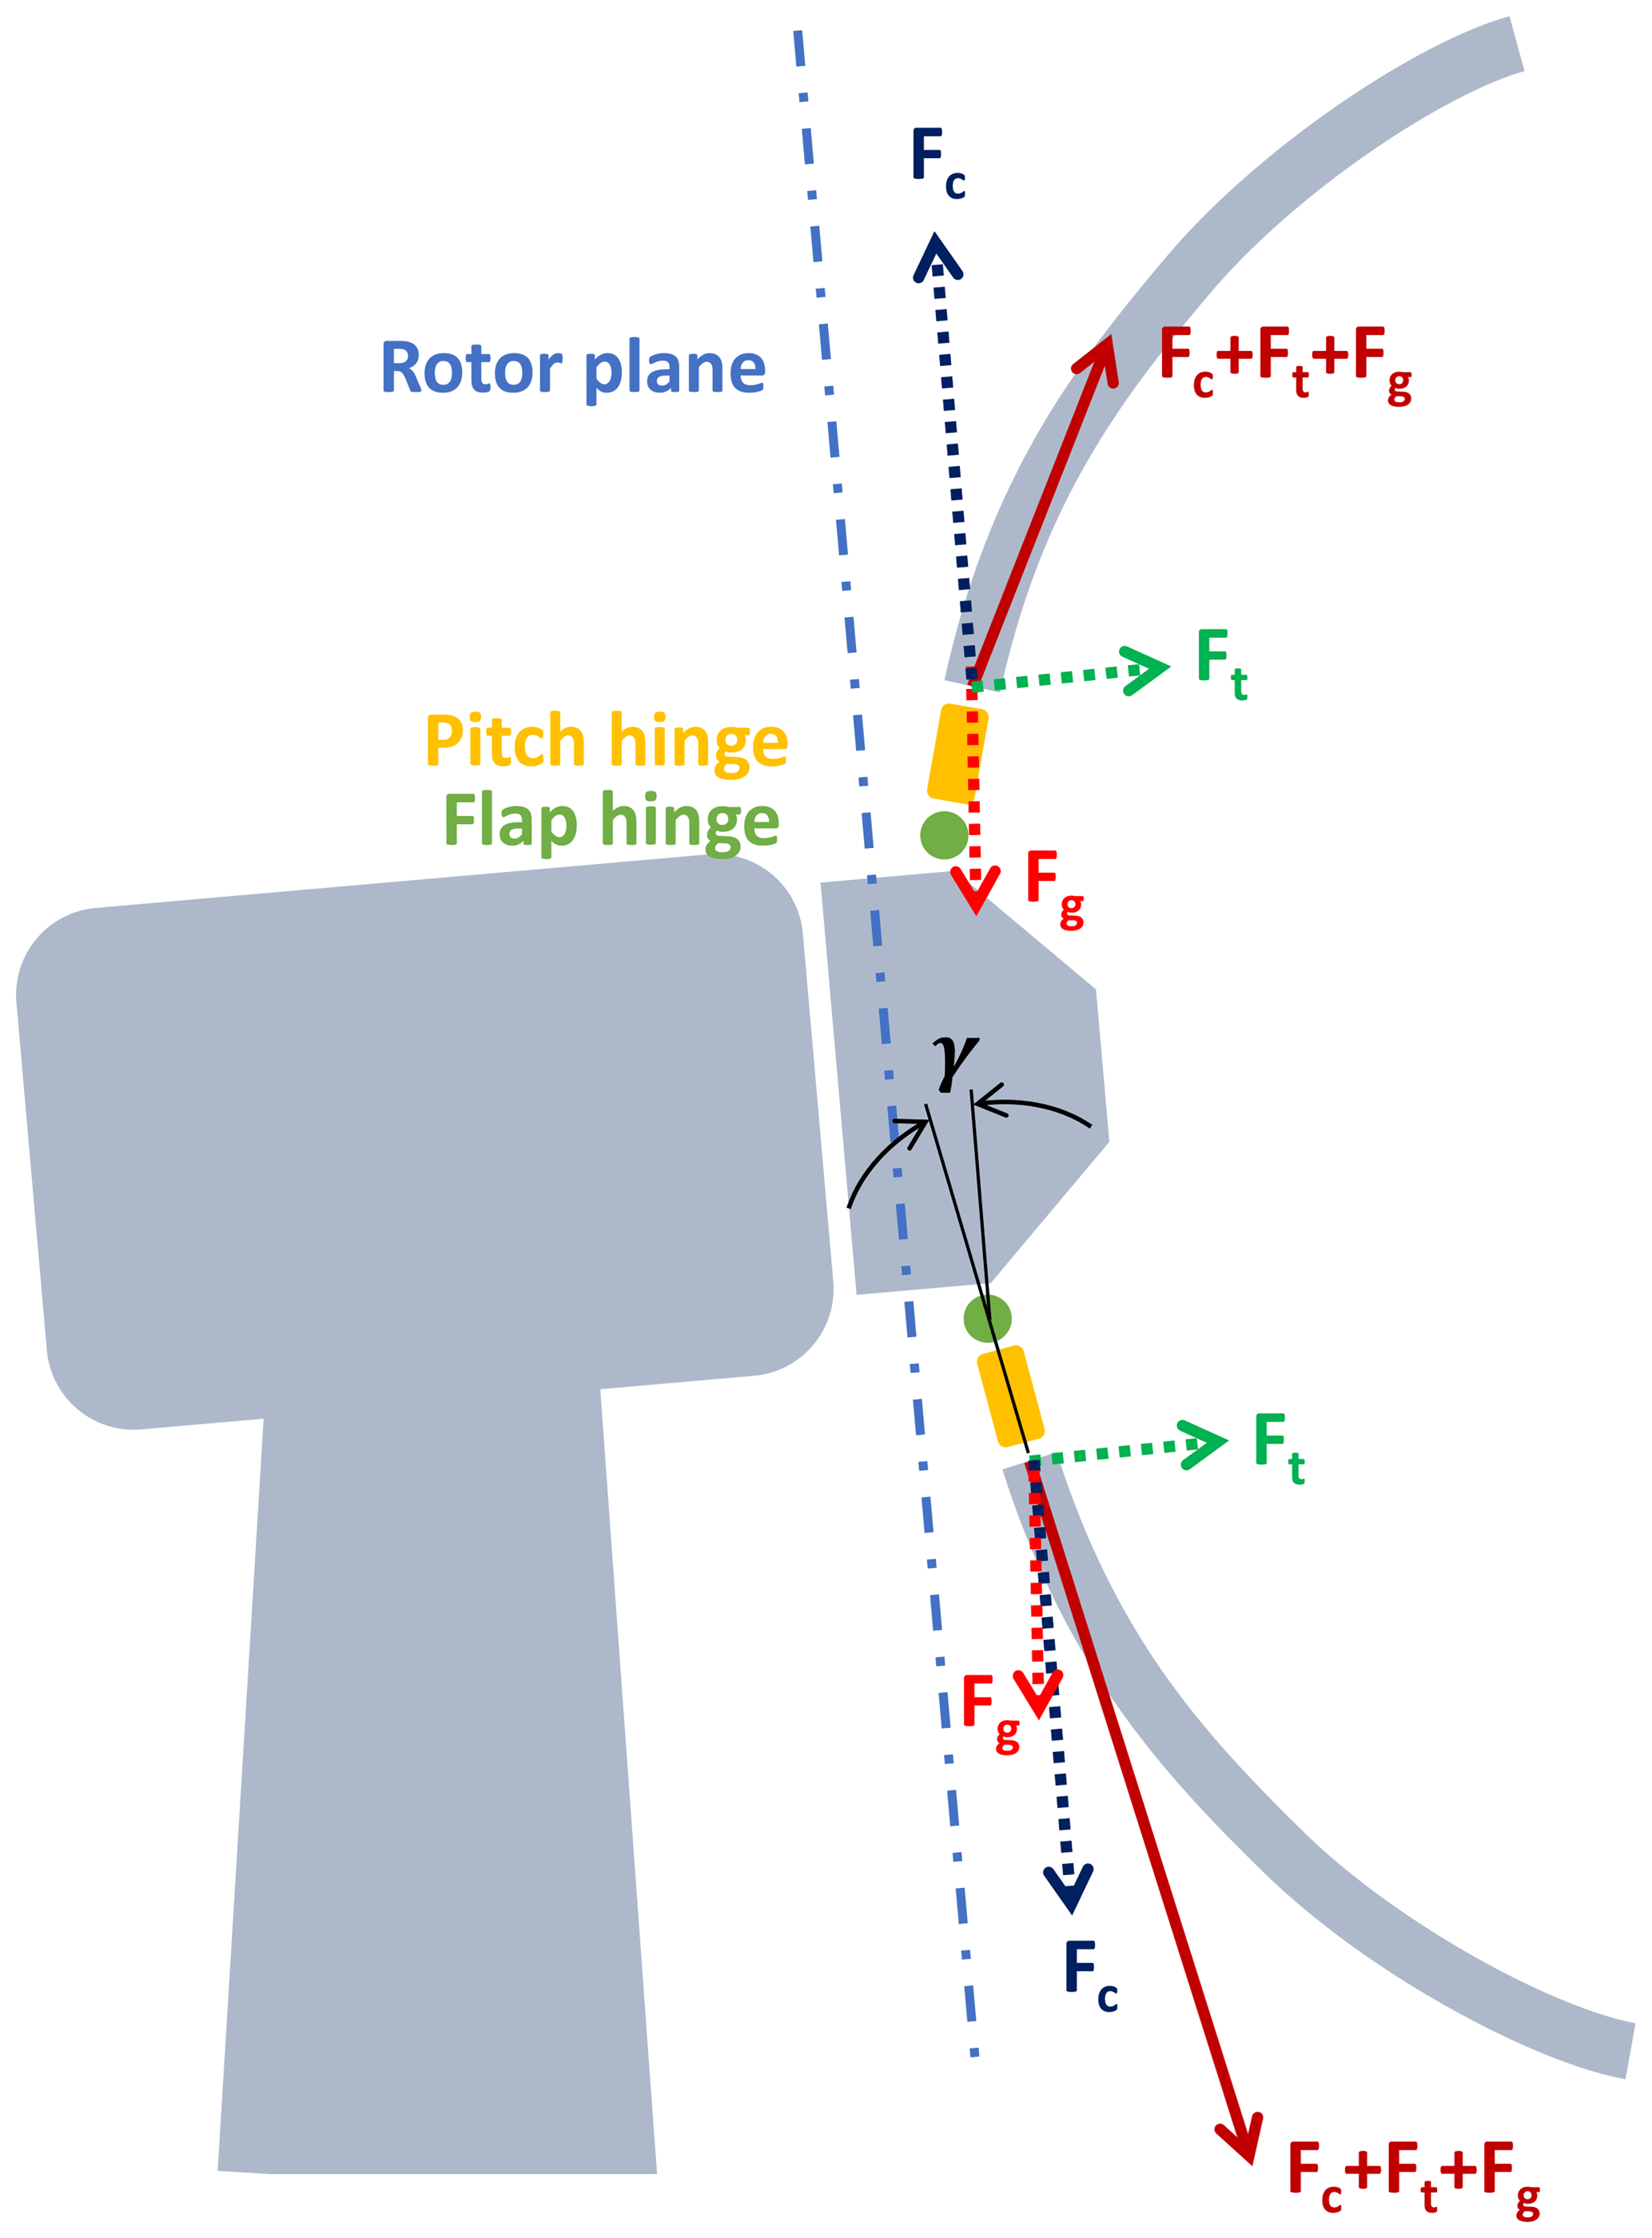 WES - Comparison between upwind and downwind designs of a 10